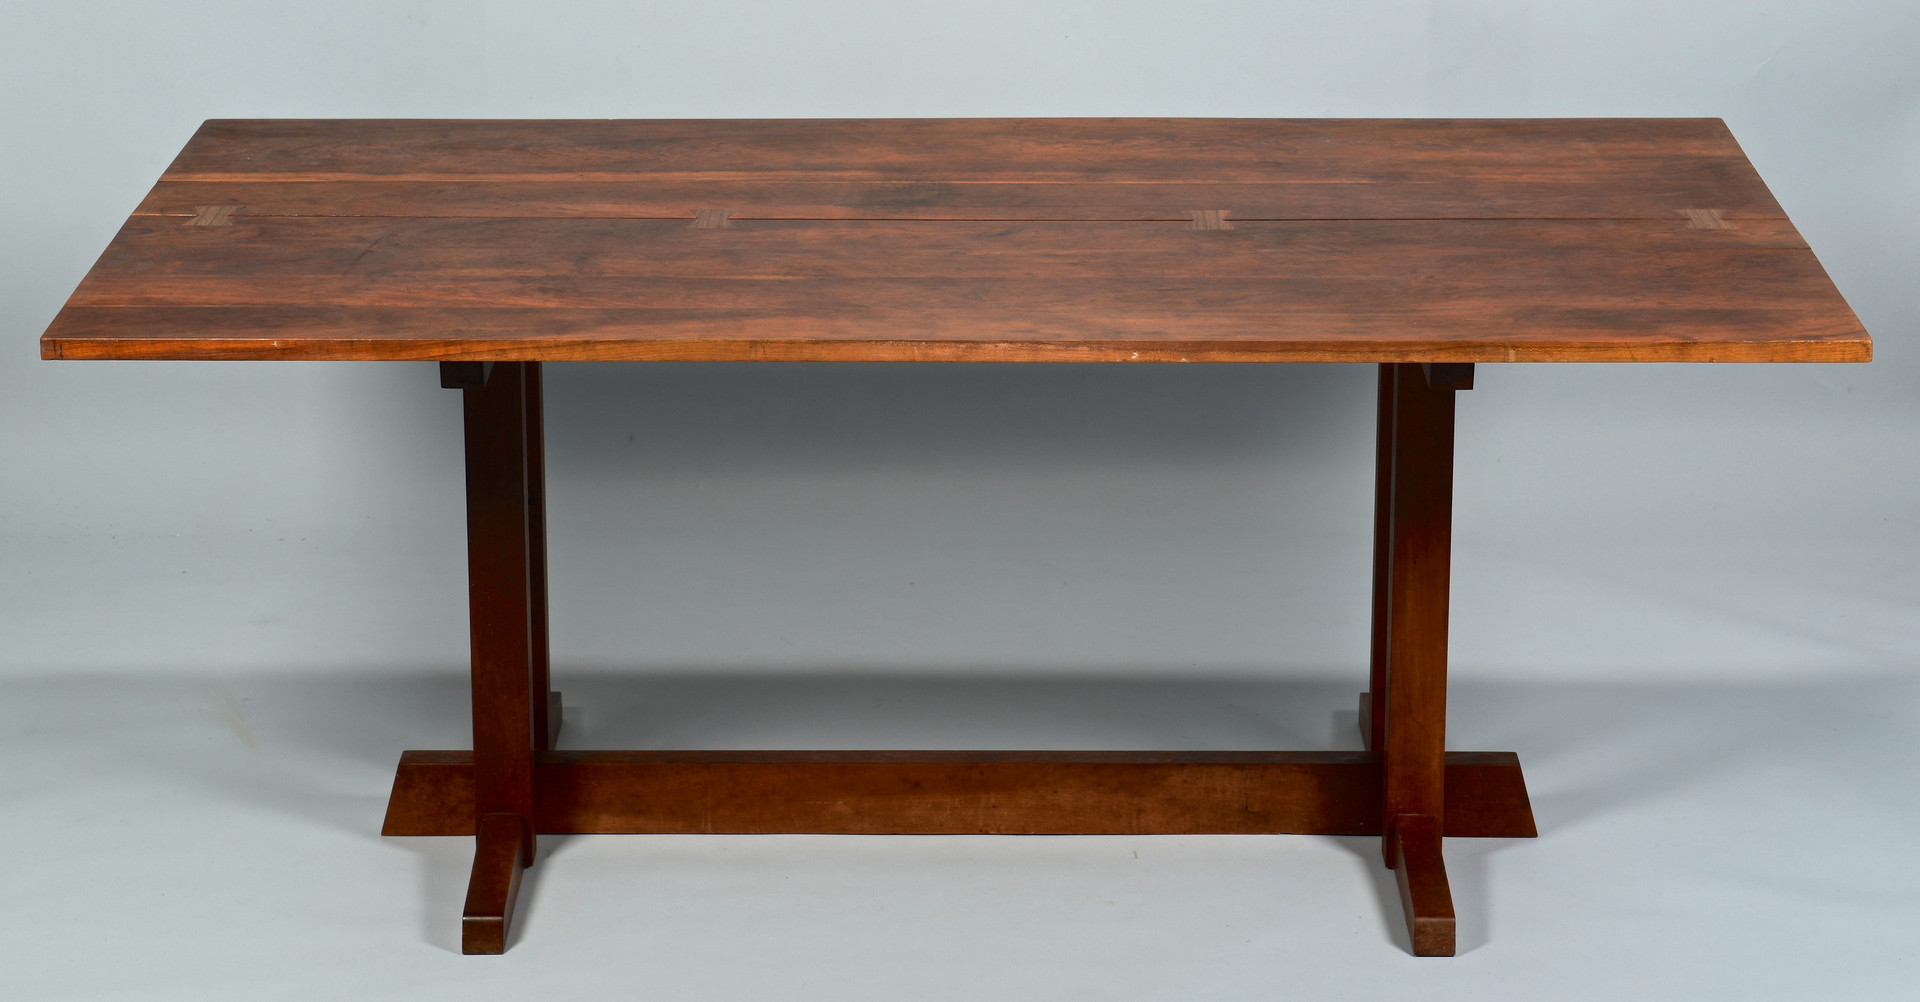 Lot 522: George Nakashima Frenchman's Cove Table